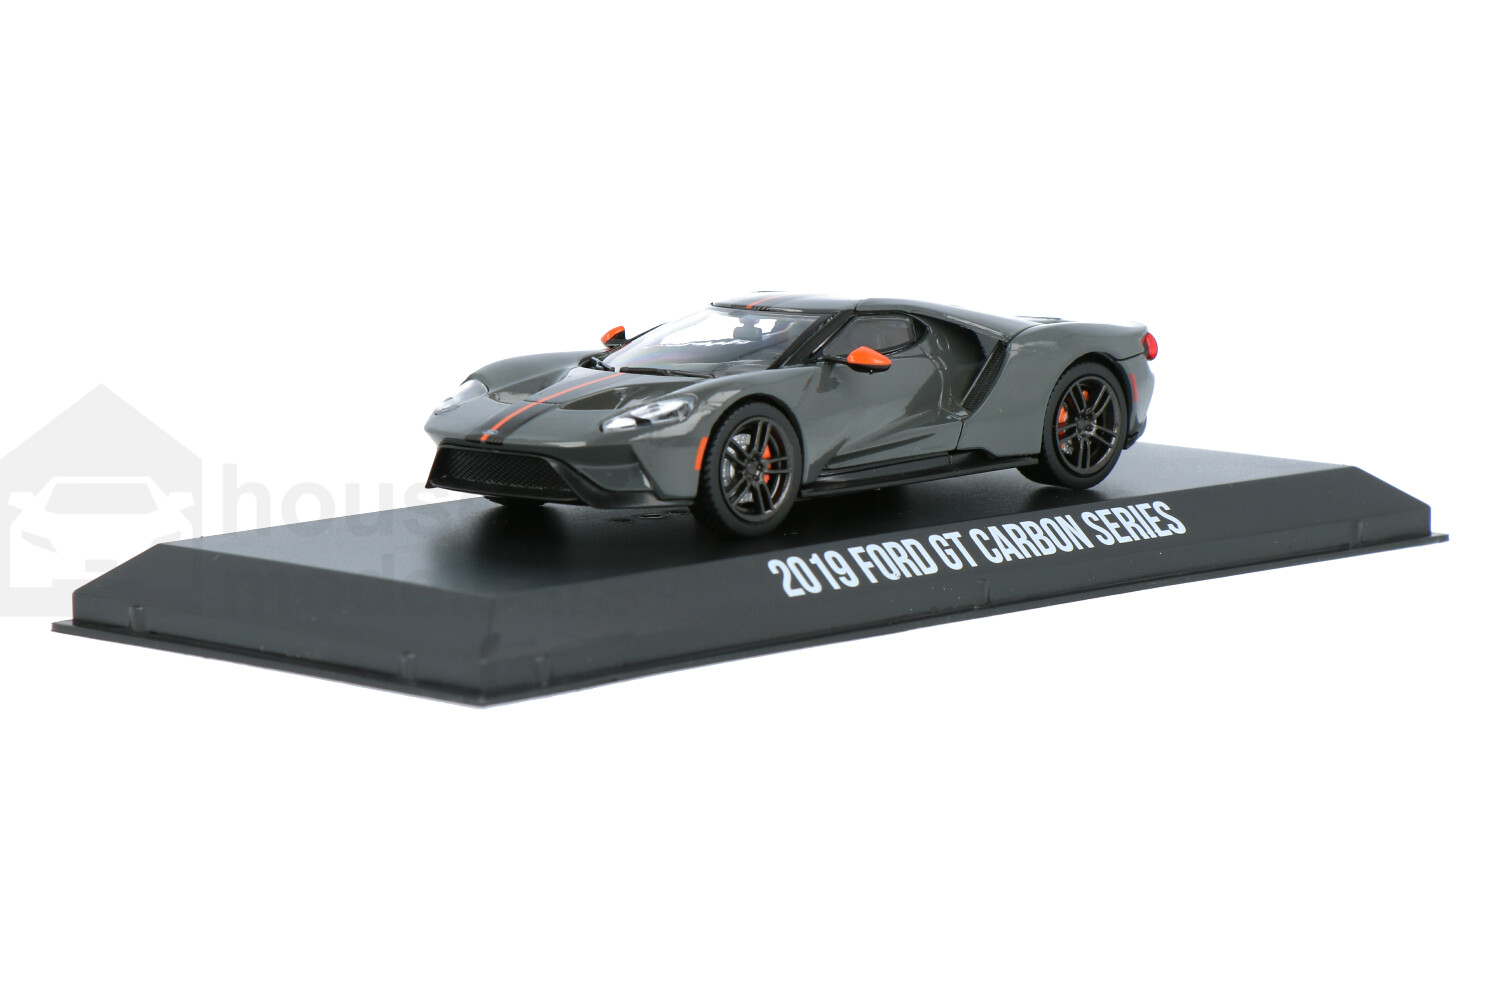 Ford GT Carbon Series - Modelauto schaal 1:43